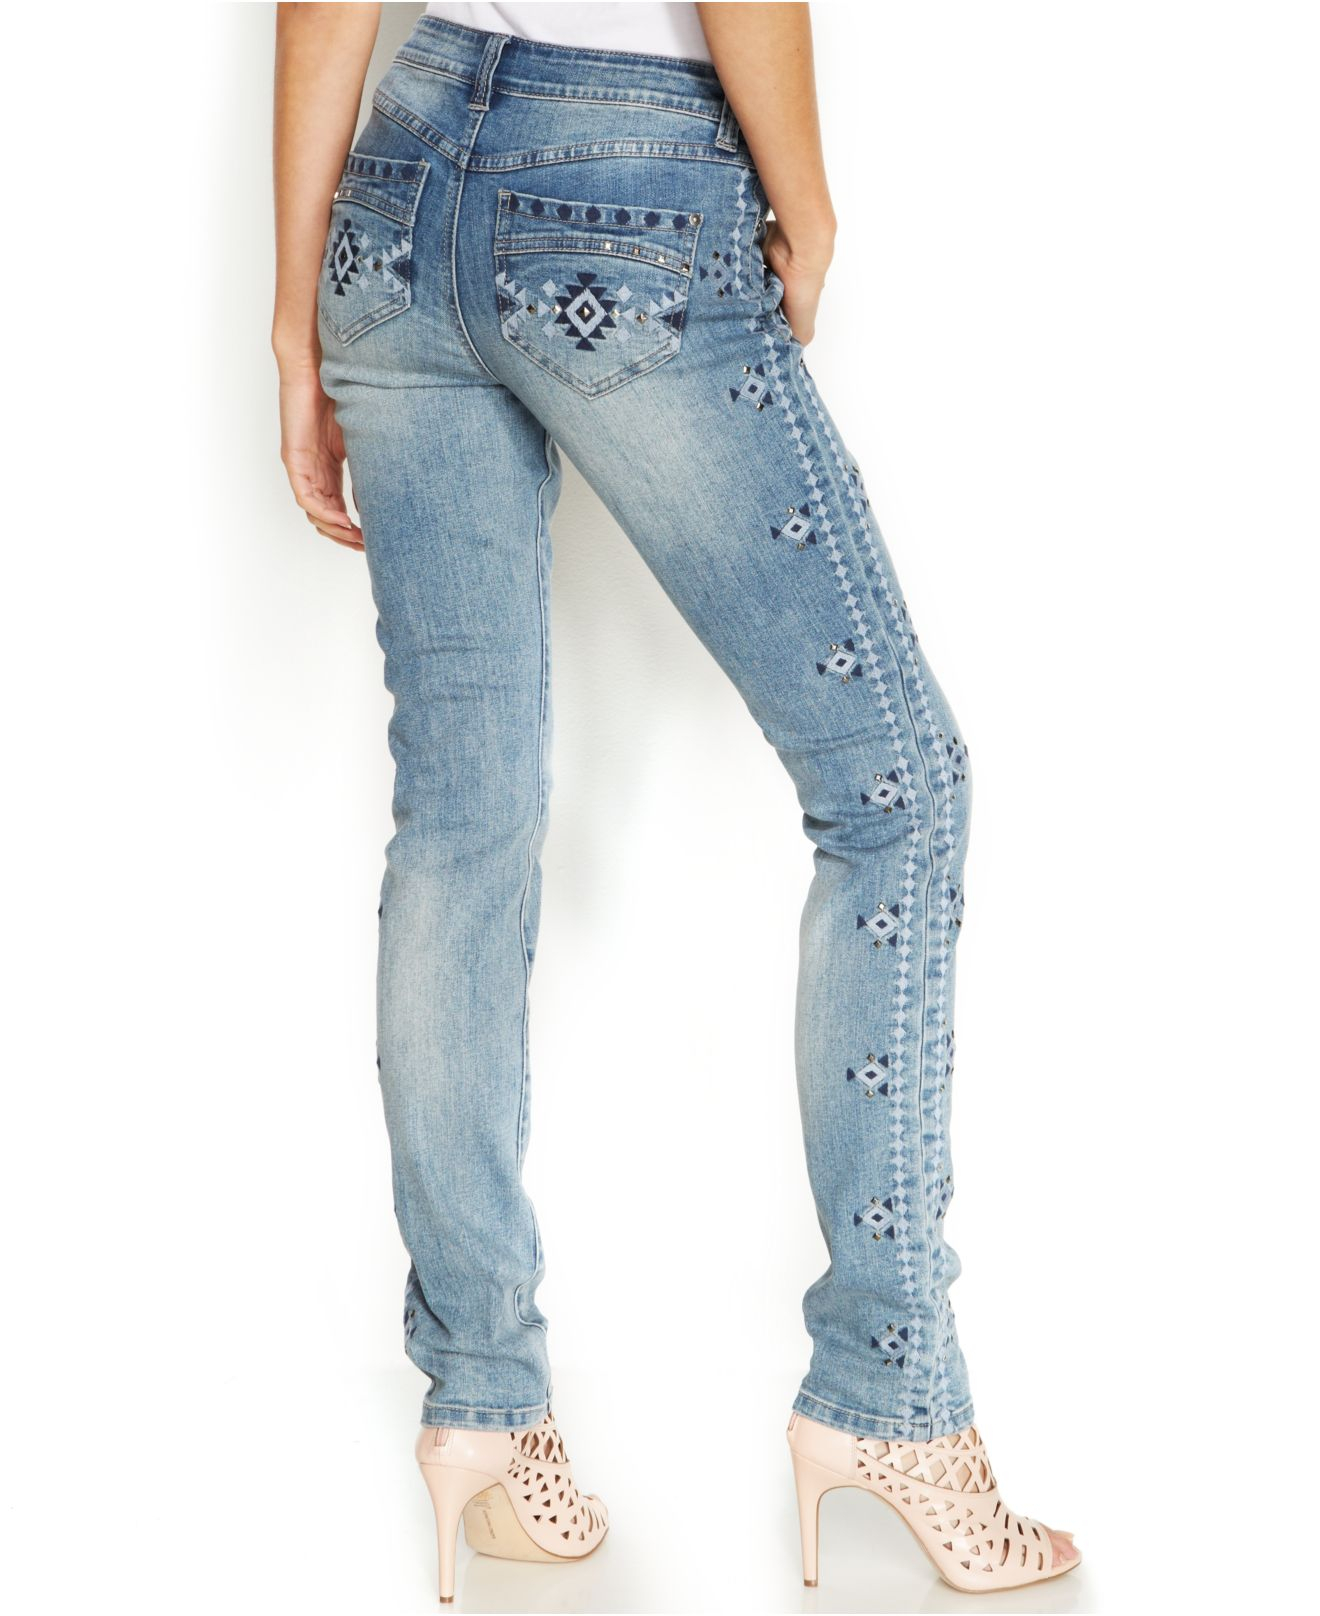 Inc international concepts Petite Embroidered Studded Skinny Jeans ...